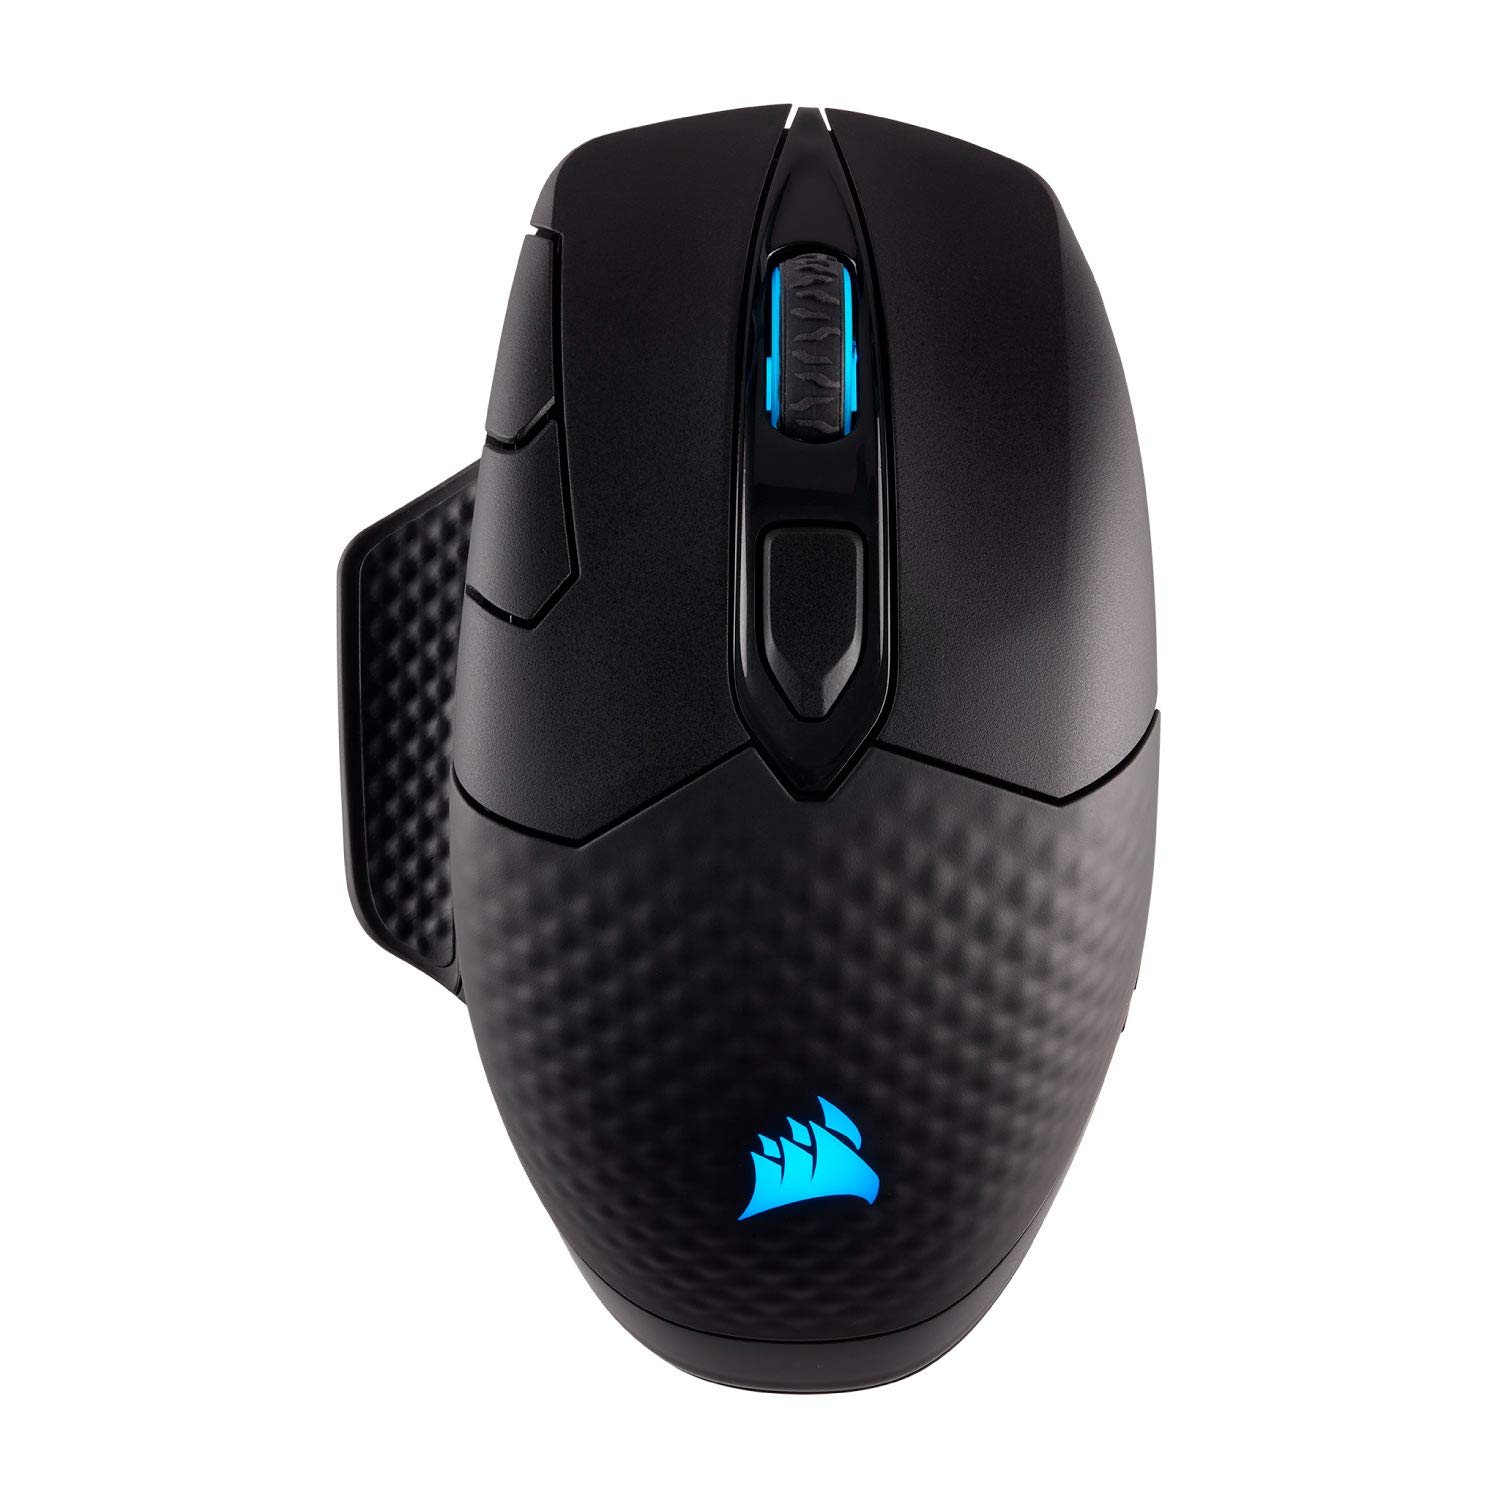 CORSAIR Dark Core SE best gaming mouse